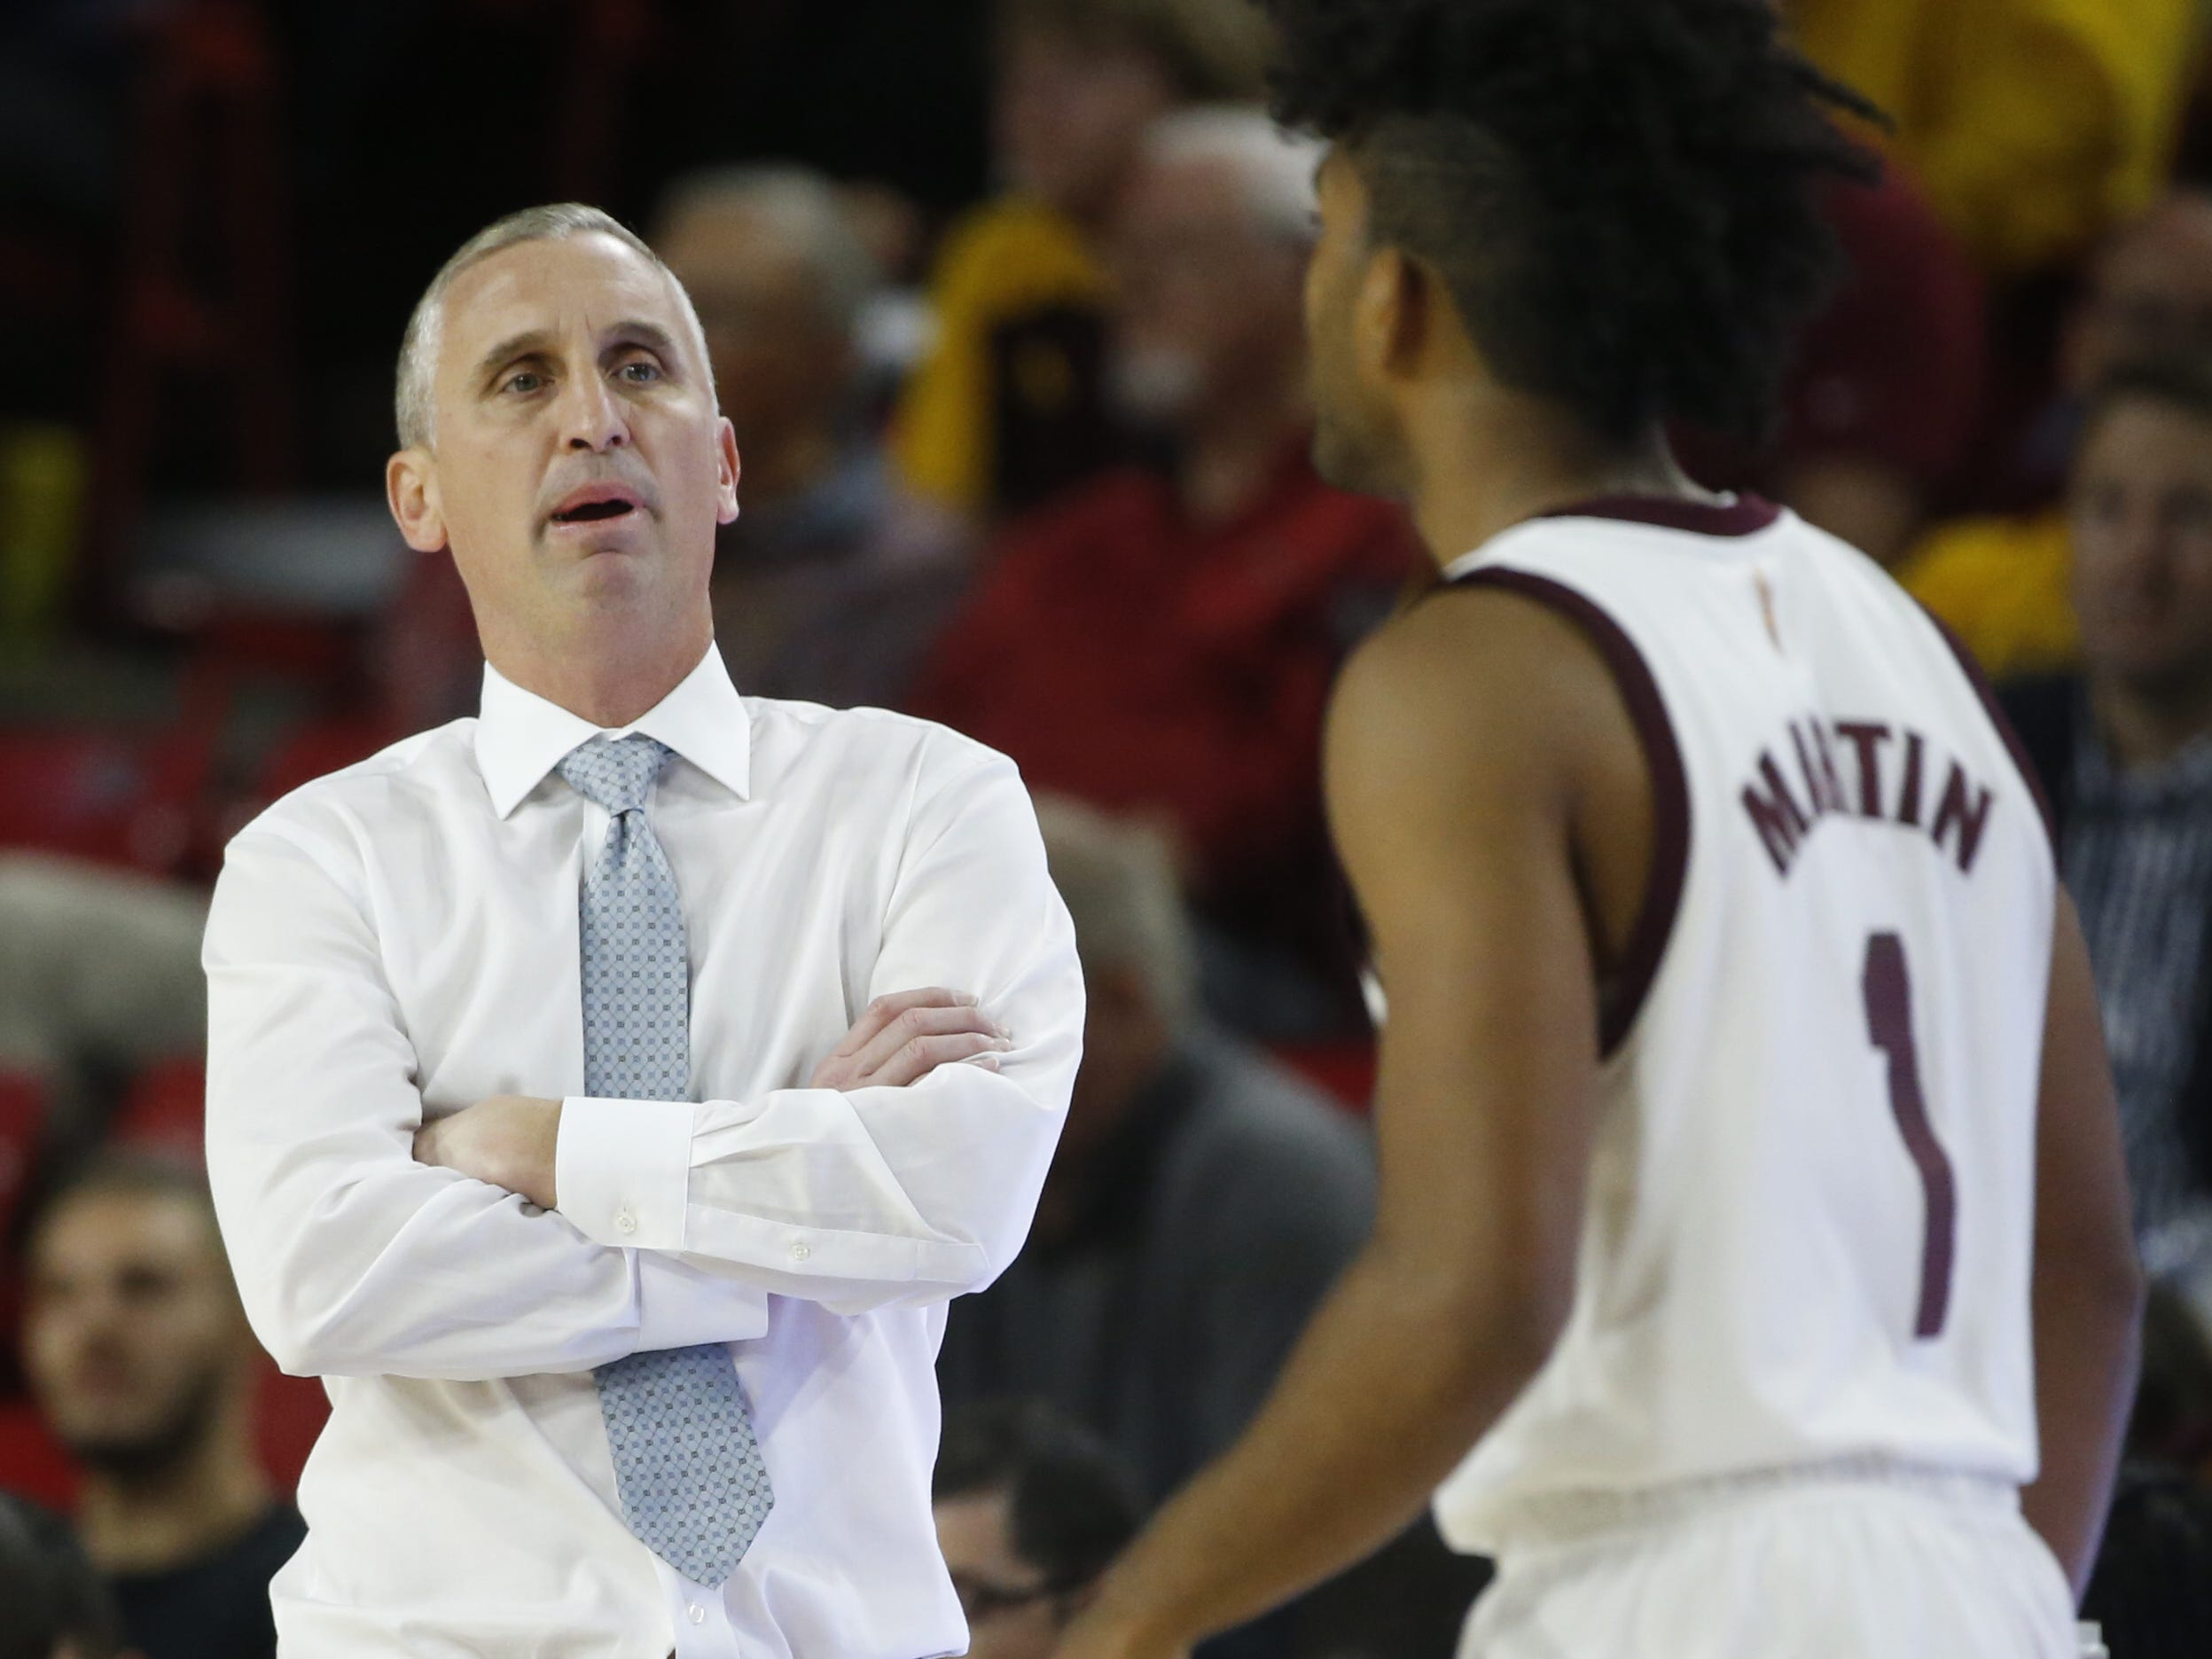 Arizona State head coach Bobby Hurley talks with Remy Martin as he enters the game during the first half against Long Beach State at Wells Fargo Arena in Tempe, Ariz. on November 12, 2018.